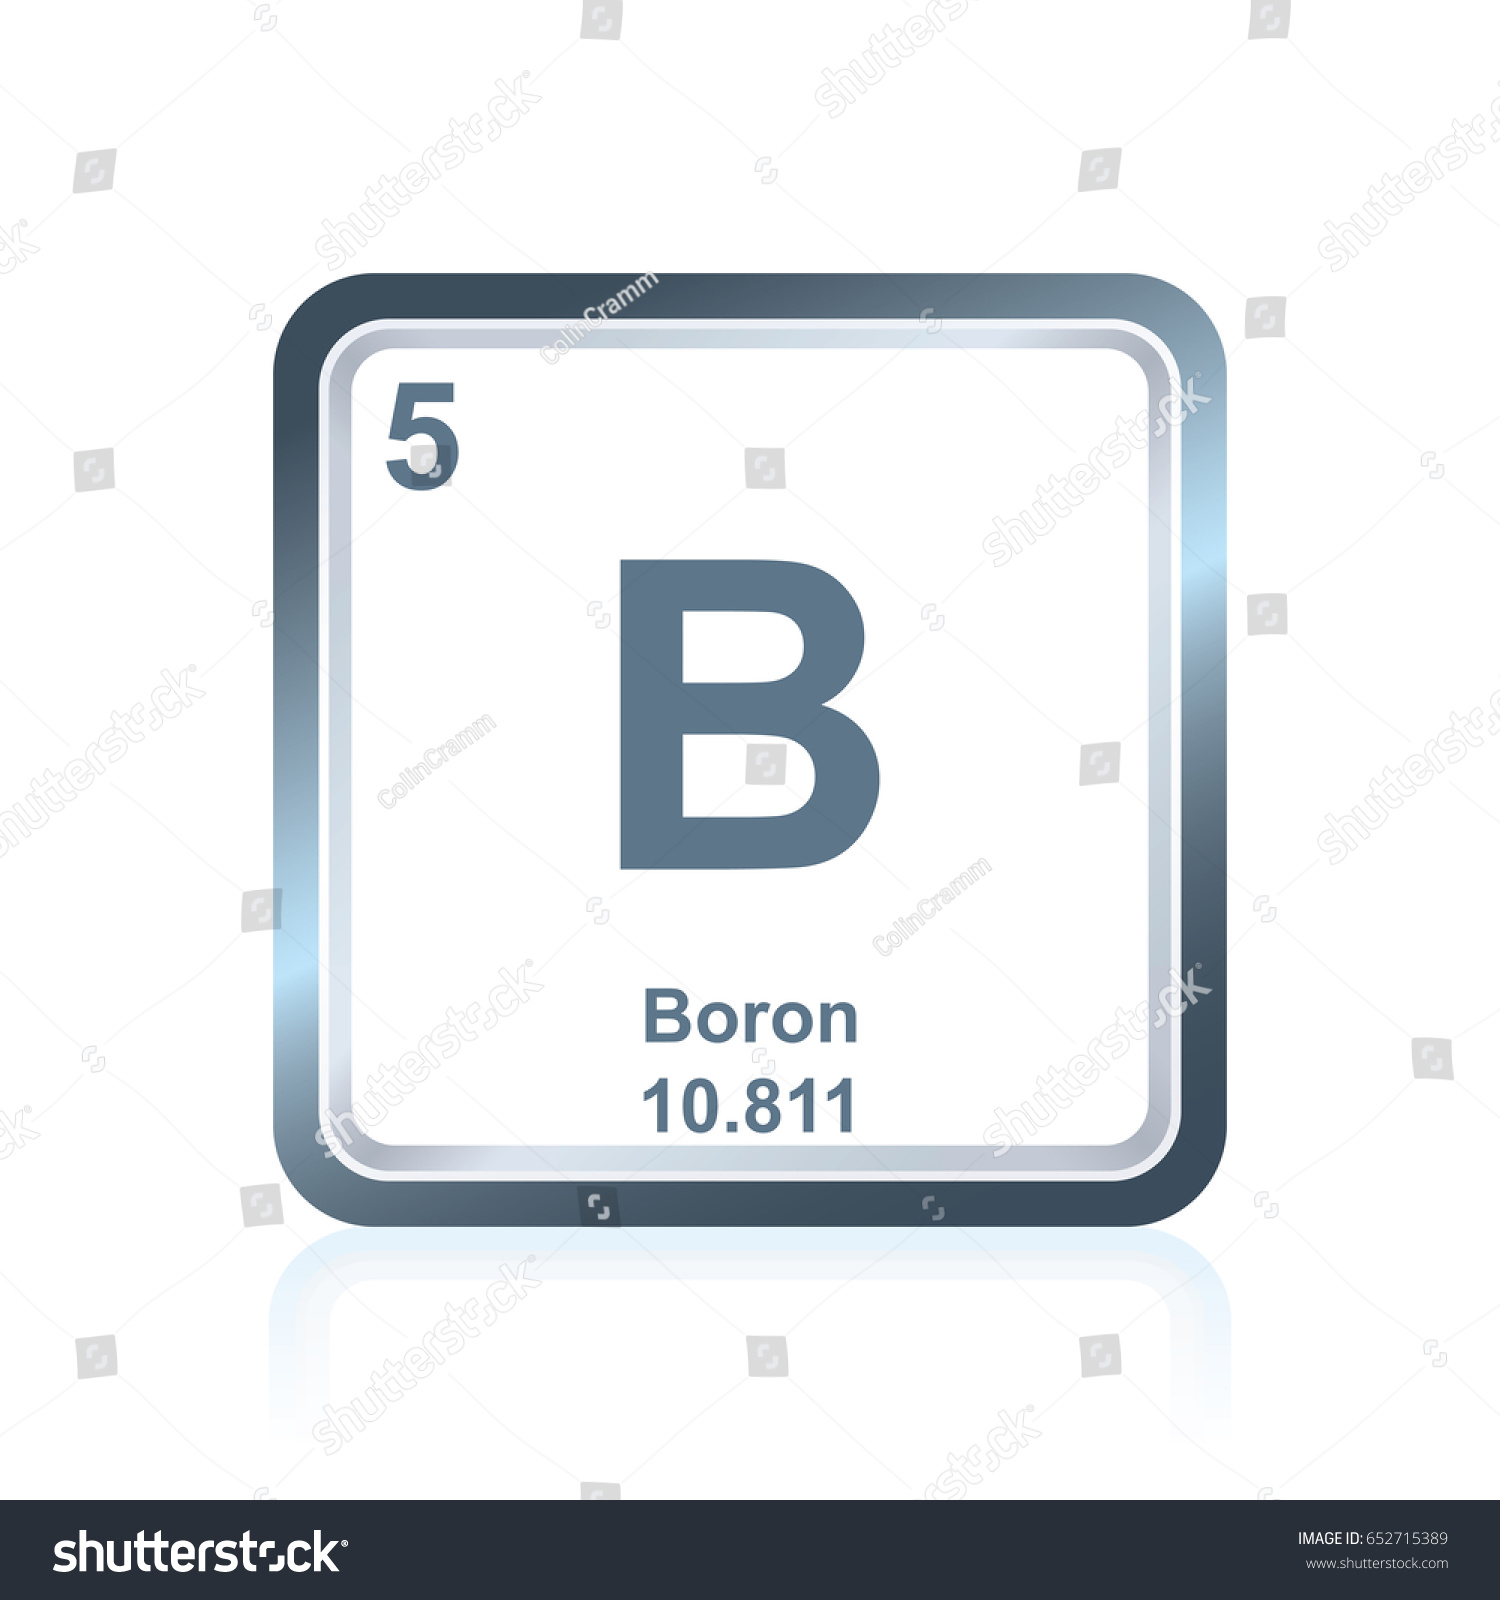 Element b periodic table image collections periodic table images symbol chemical element boron seen on stock vector 652715389 symbol of chemical element boron as seen gamestrikefo Choice Image